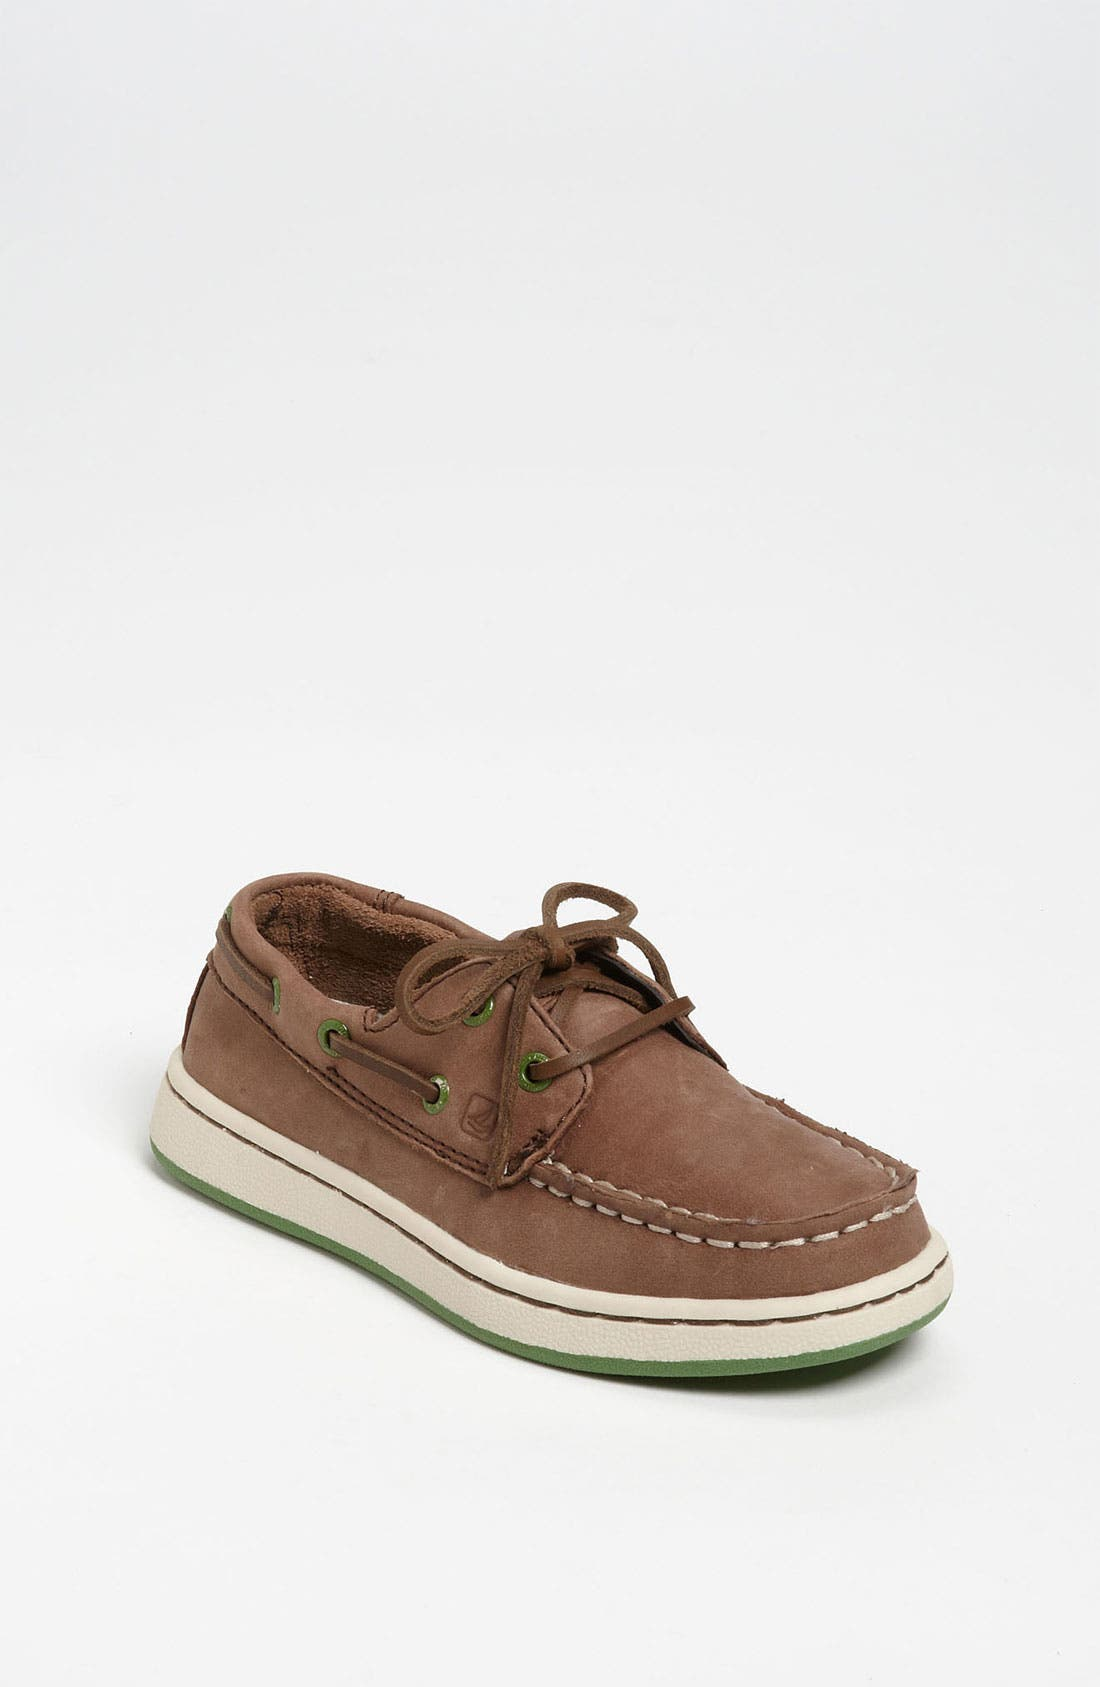 Main Image - Sperry Top-Sider® Kids 'Cupsole' Loafer (Toddler)